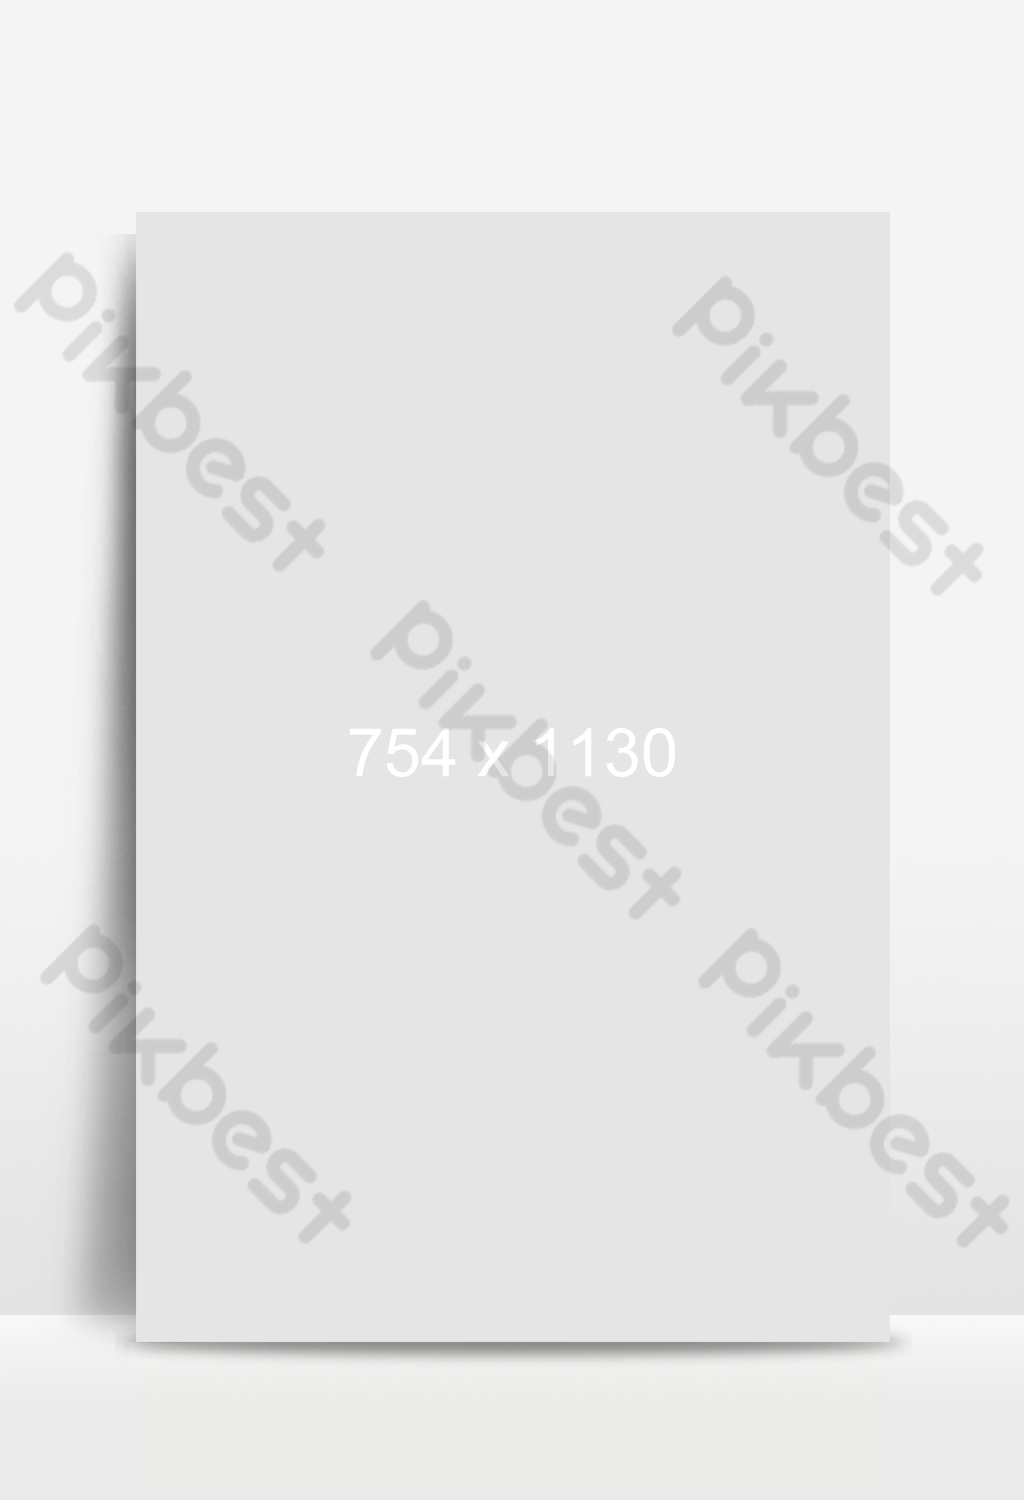 Movie popcorn delicious simple flat red banner | Backgrounds PSD Free  Download - Pikbest